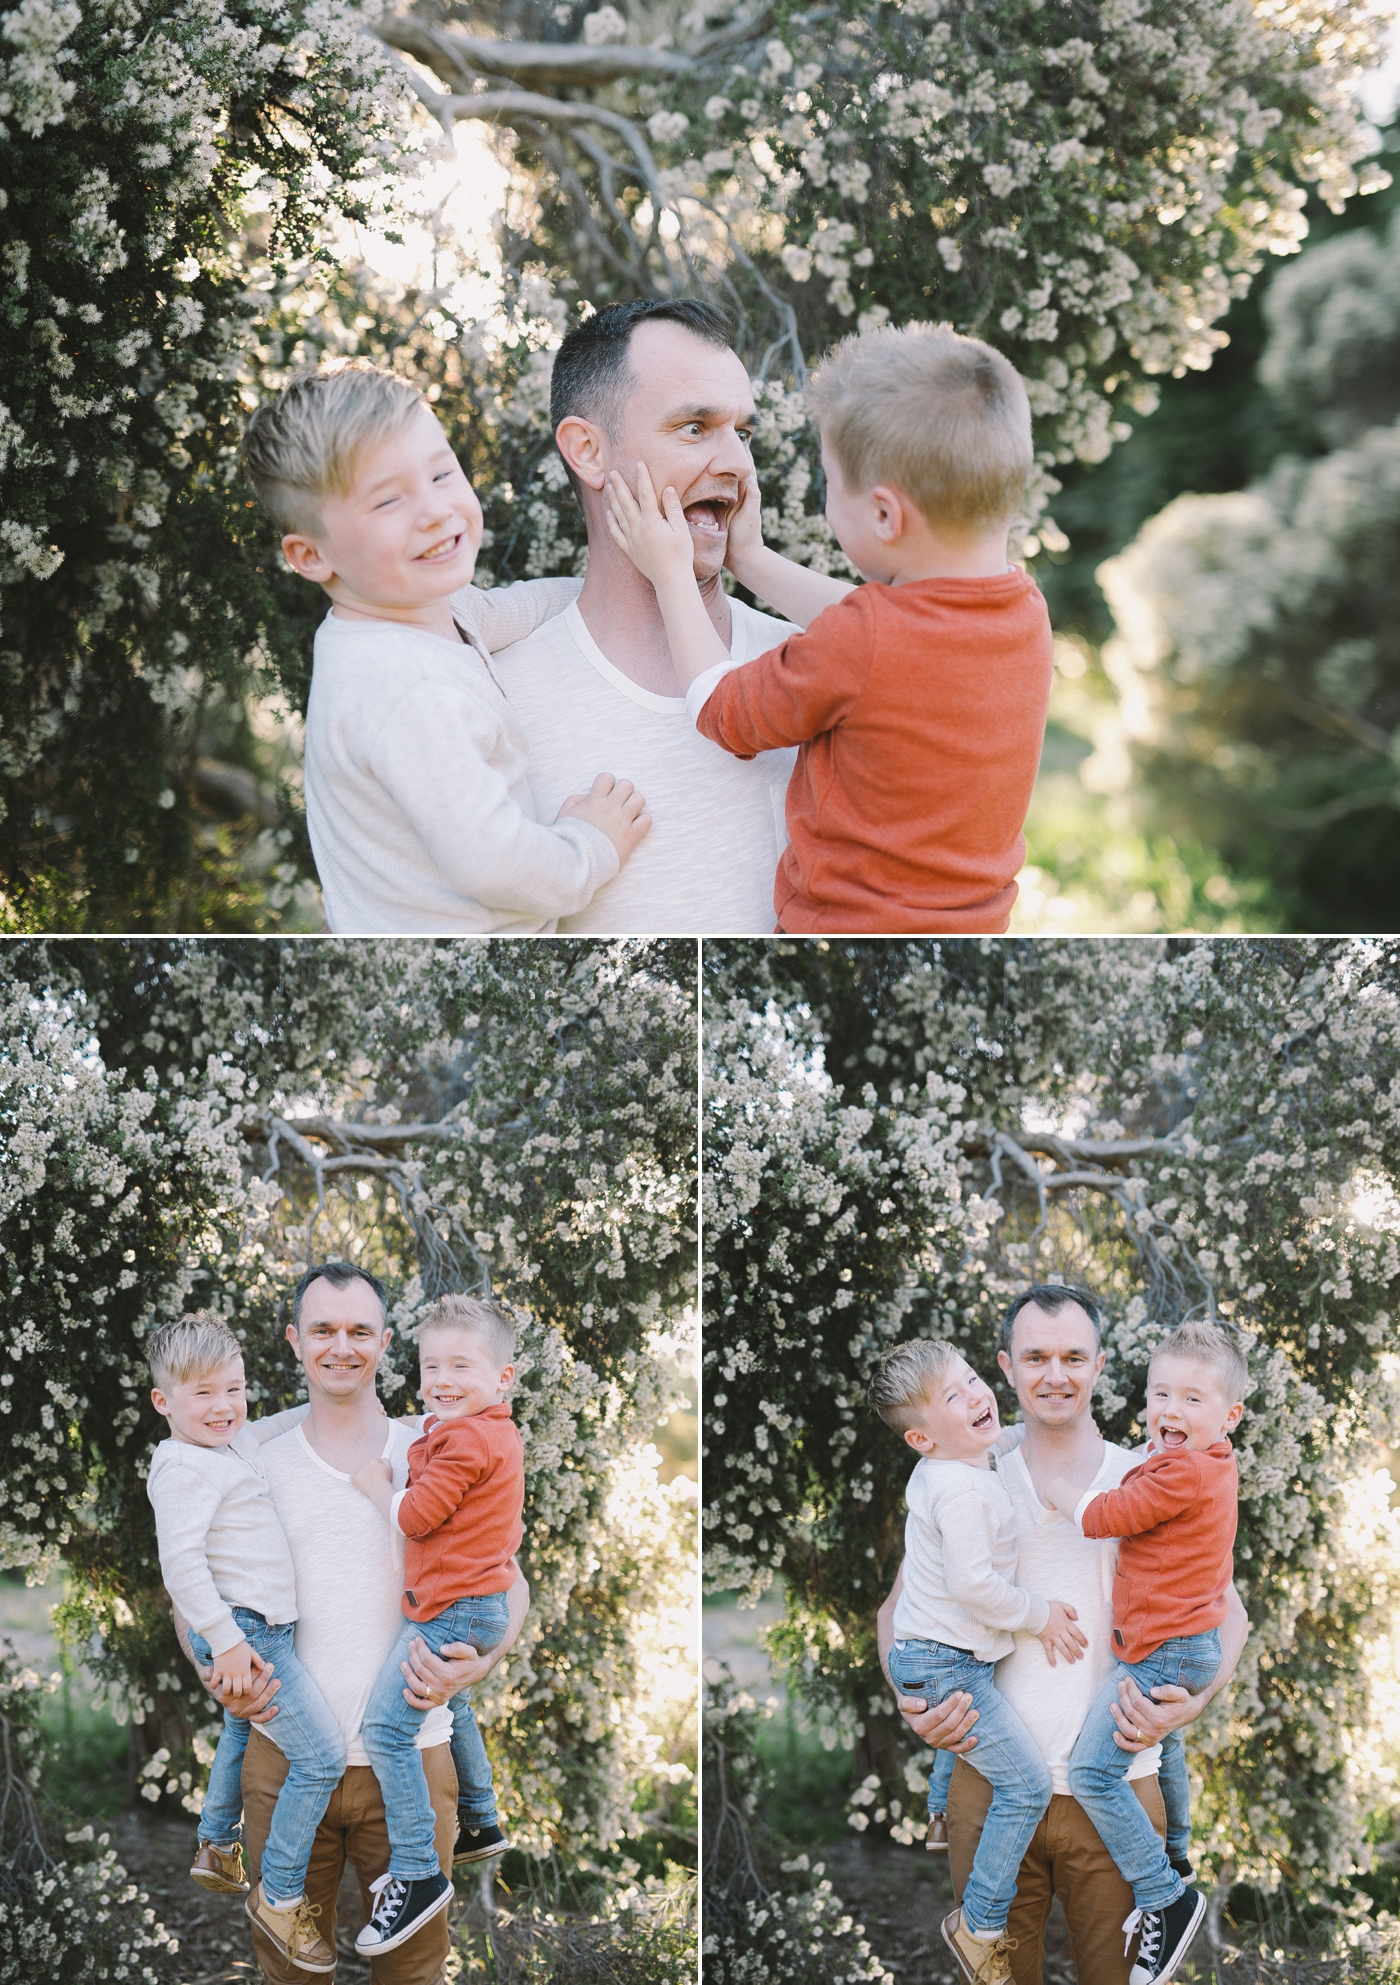 The Kammer Family - Natural Family Photographer in Adelaide - www.katherineschultzphotography.com 14